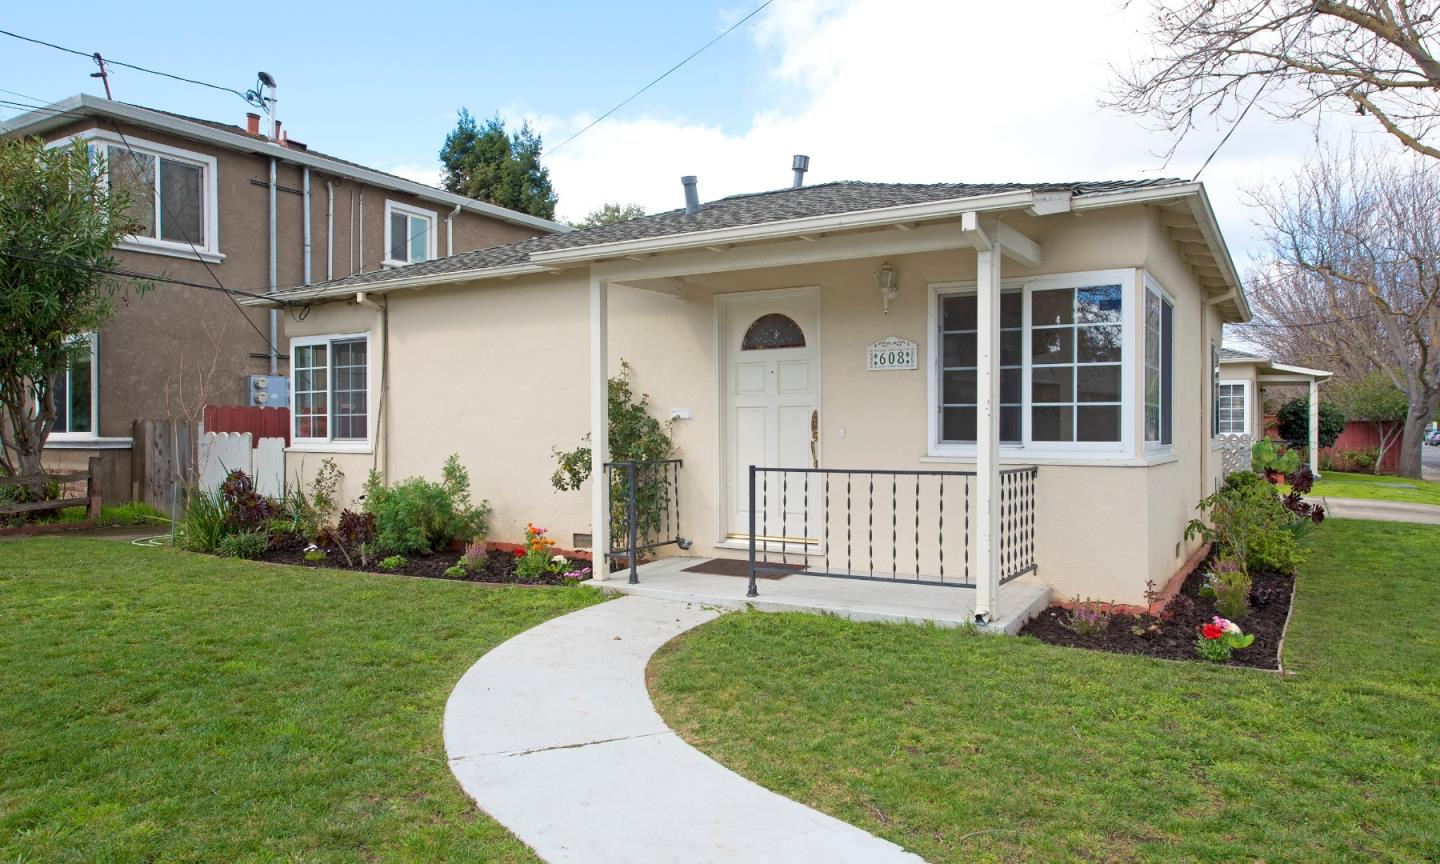 Detail Gallery Image 1 of 13 For 1801 Latham St, Mountain View, CA, 94041 - 4 Beds | 2 Baths